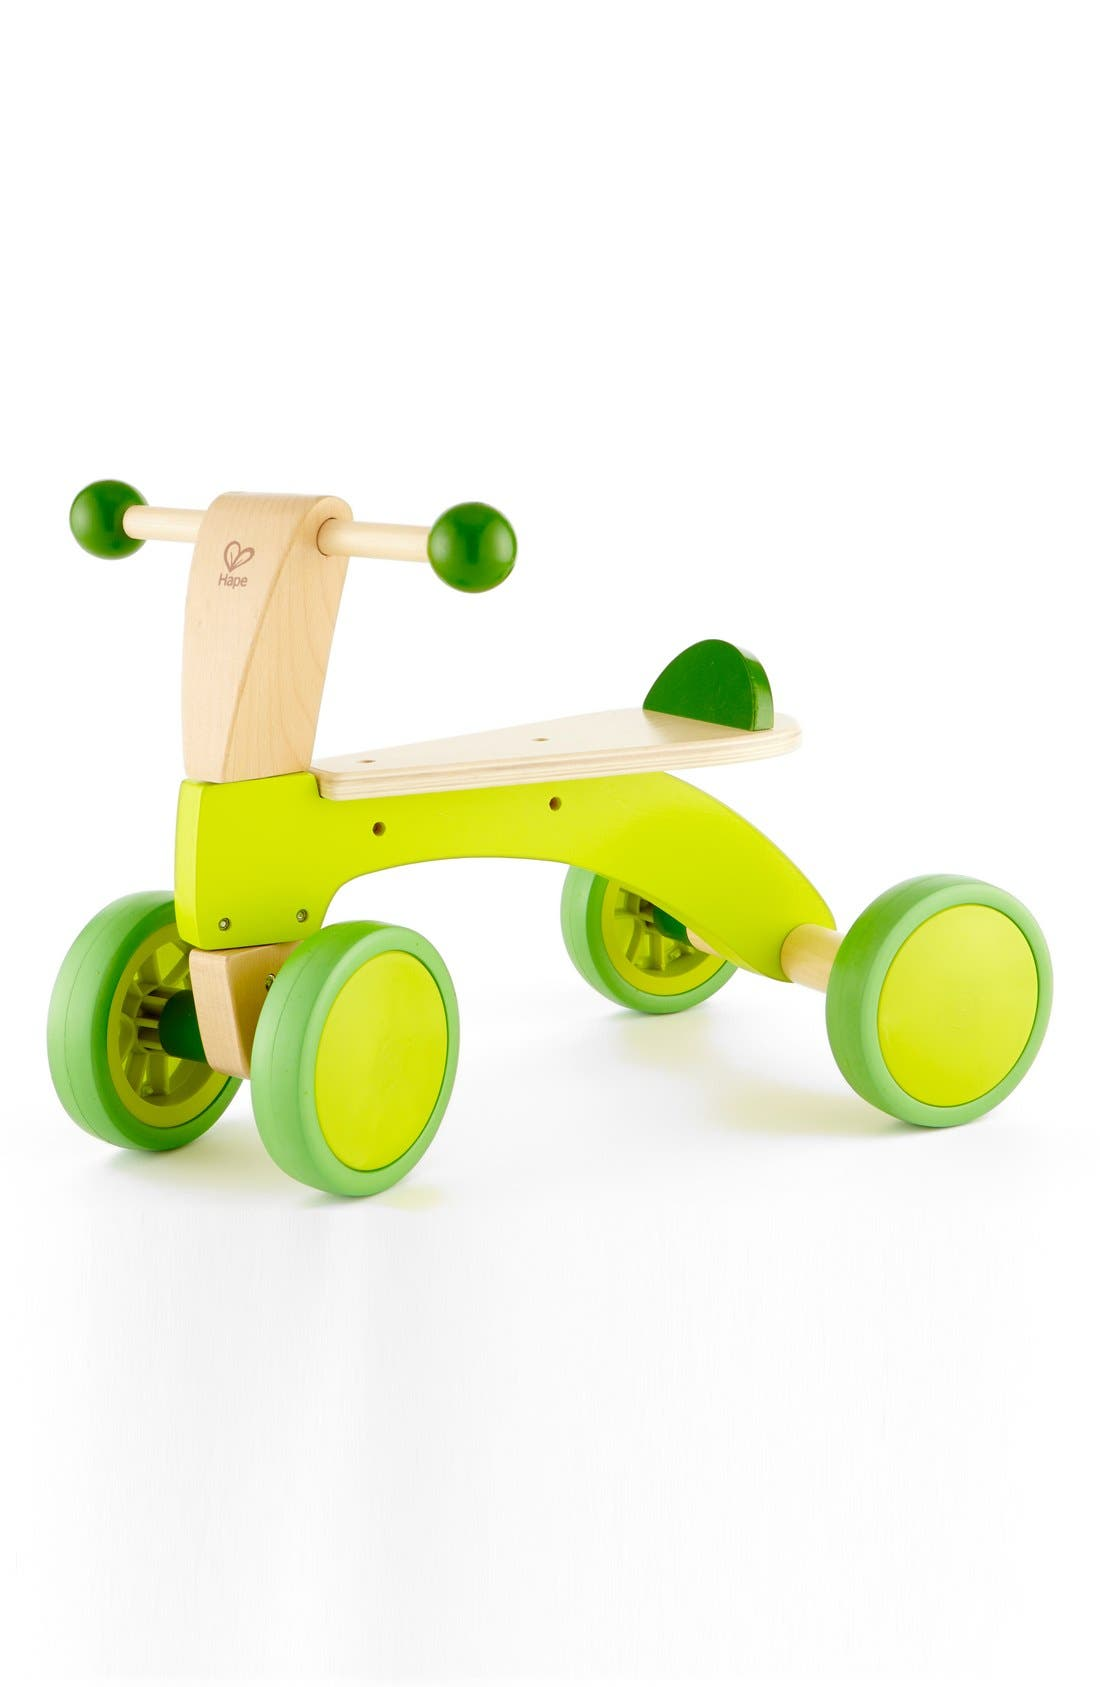 'Scoot-Around' Riding Toy,                             Main thumbnail 1, color,                             300